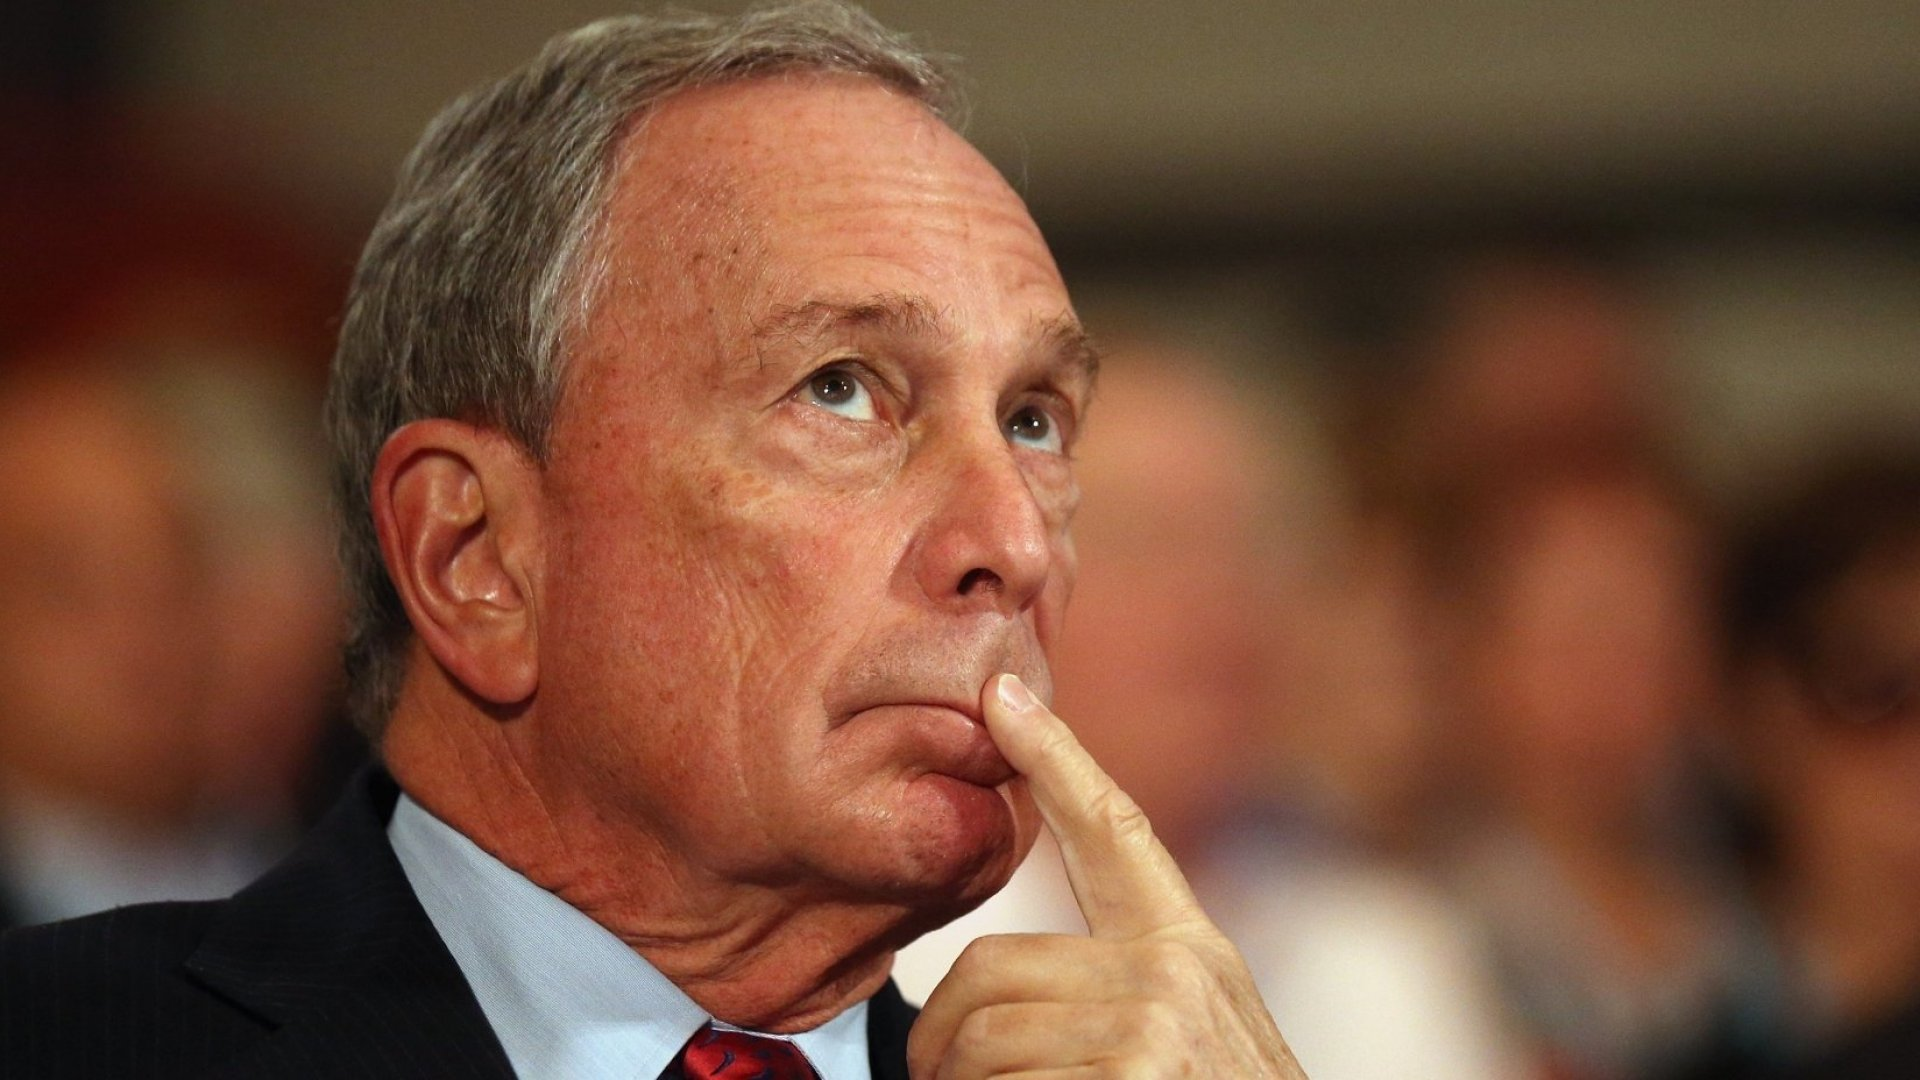 Mike Bloomberg's Campaign Twitter Account Fakes Being Hacked and Pulls Off a Great Stunt